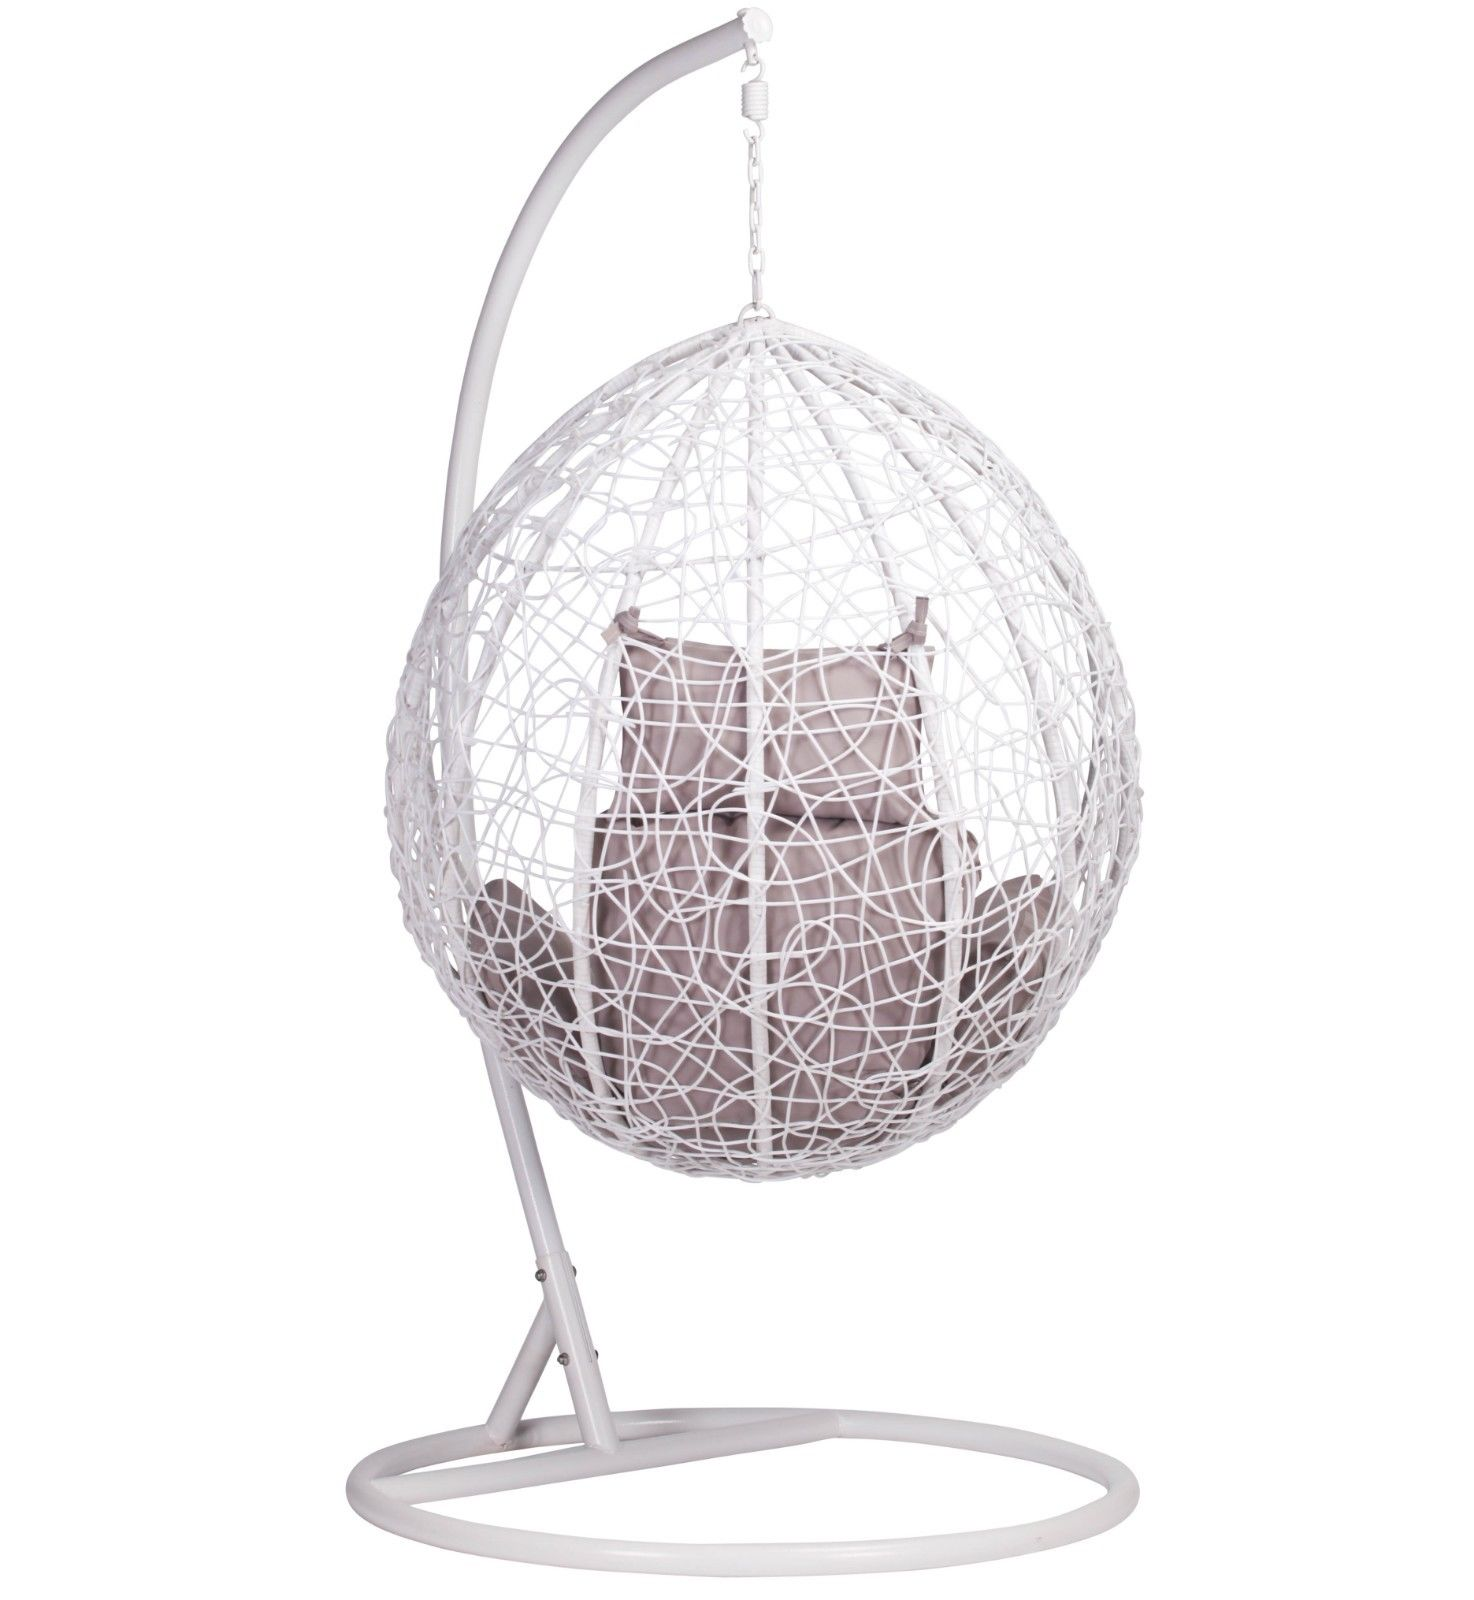 White Rattan Swing Weave Patio Garden Hanging Egg Chair Furniture La Maison Chic Luxury Interiors